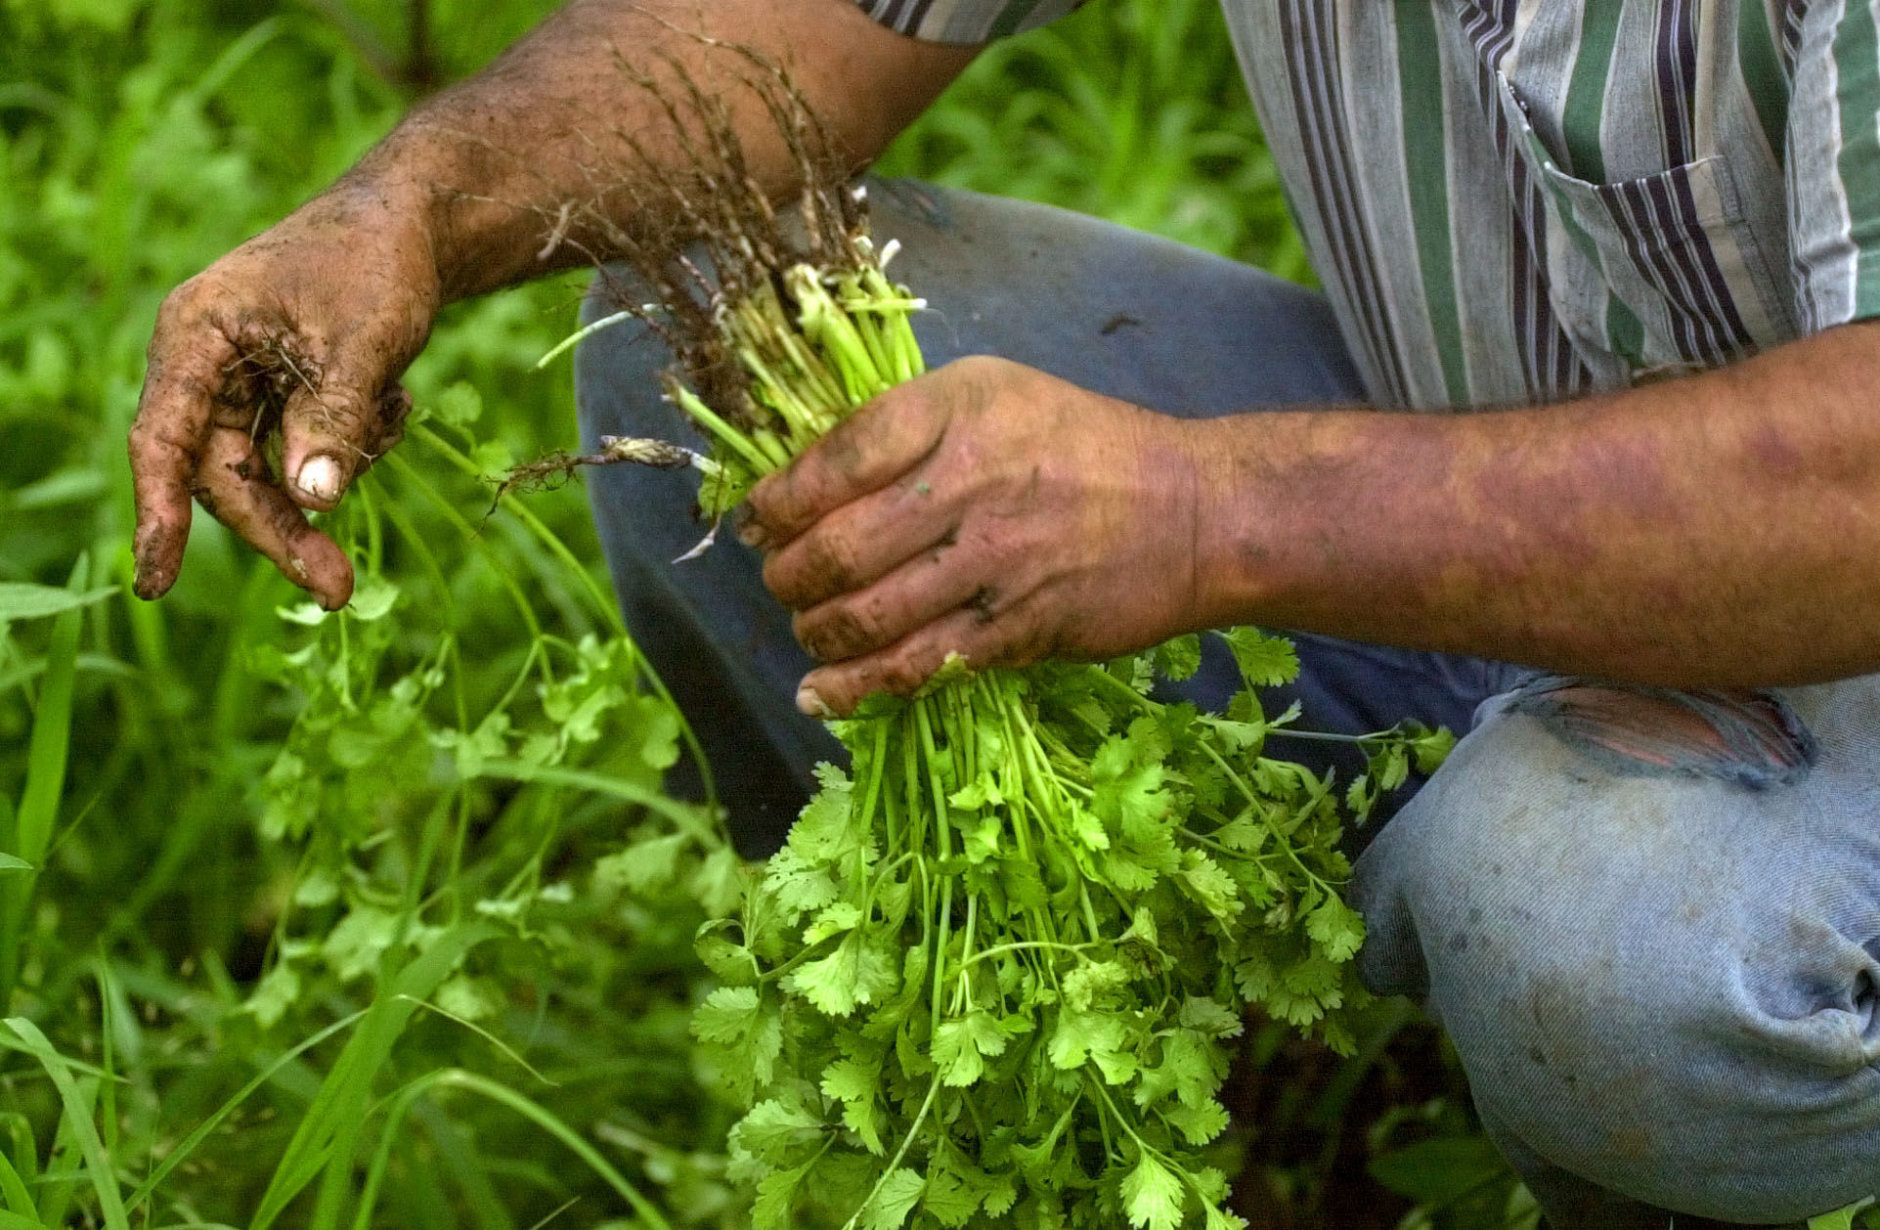 Costa Rican farmer Manuel Munoz harvests fresh cilantro to be sold at the local farmer's market on a small plot of land he rents outside San Jose, Costa Rica, Friday, May 9, 2003.  President Able Pacheco has recently promised increased aid for the country's agricultural sector through low intrest loans as one of the main goals of his presidency. Thousands of small scale farmers protested recently against a possible Free Trade Agreement between the United States and Central America, fearing it will leave them unable to compete against cheaply imported agricultural products. (AP Photo/Kent Gilbert)